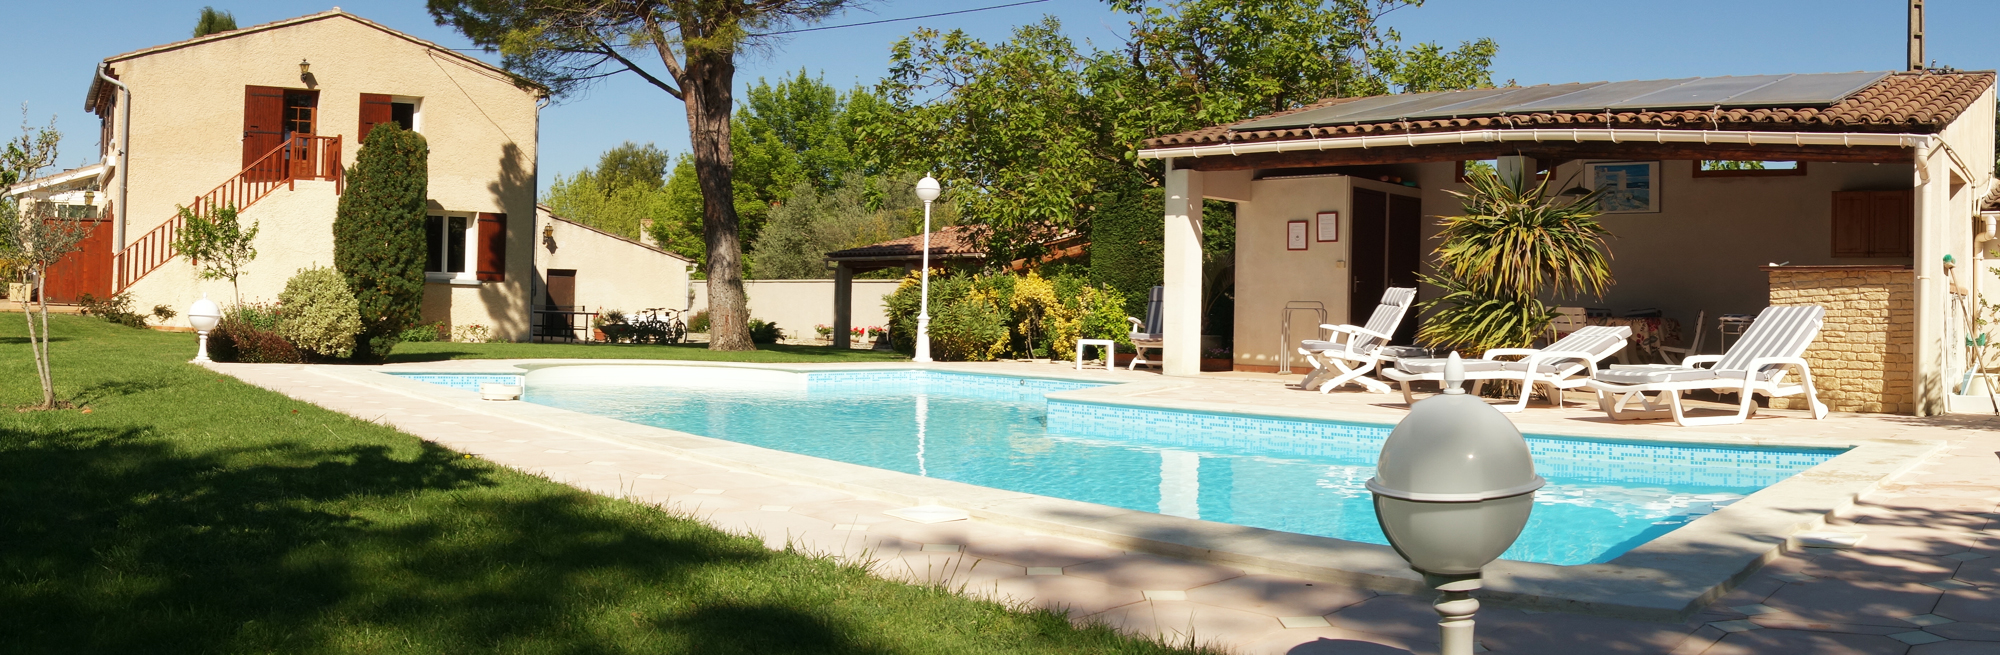 Location en provence-entree-poolhouse